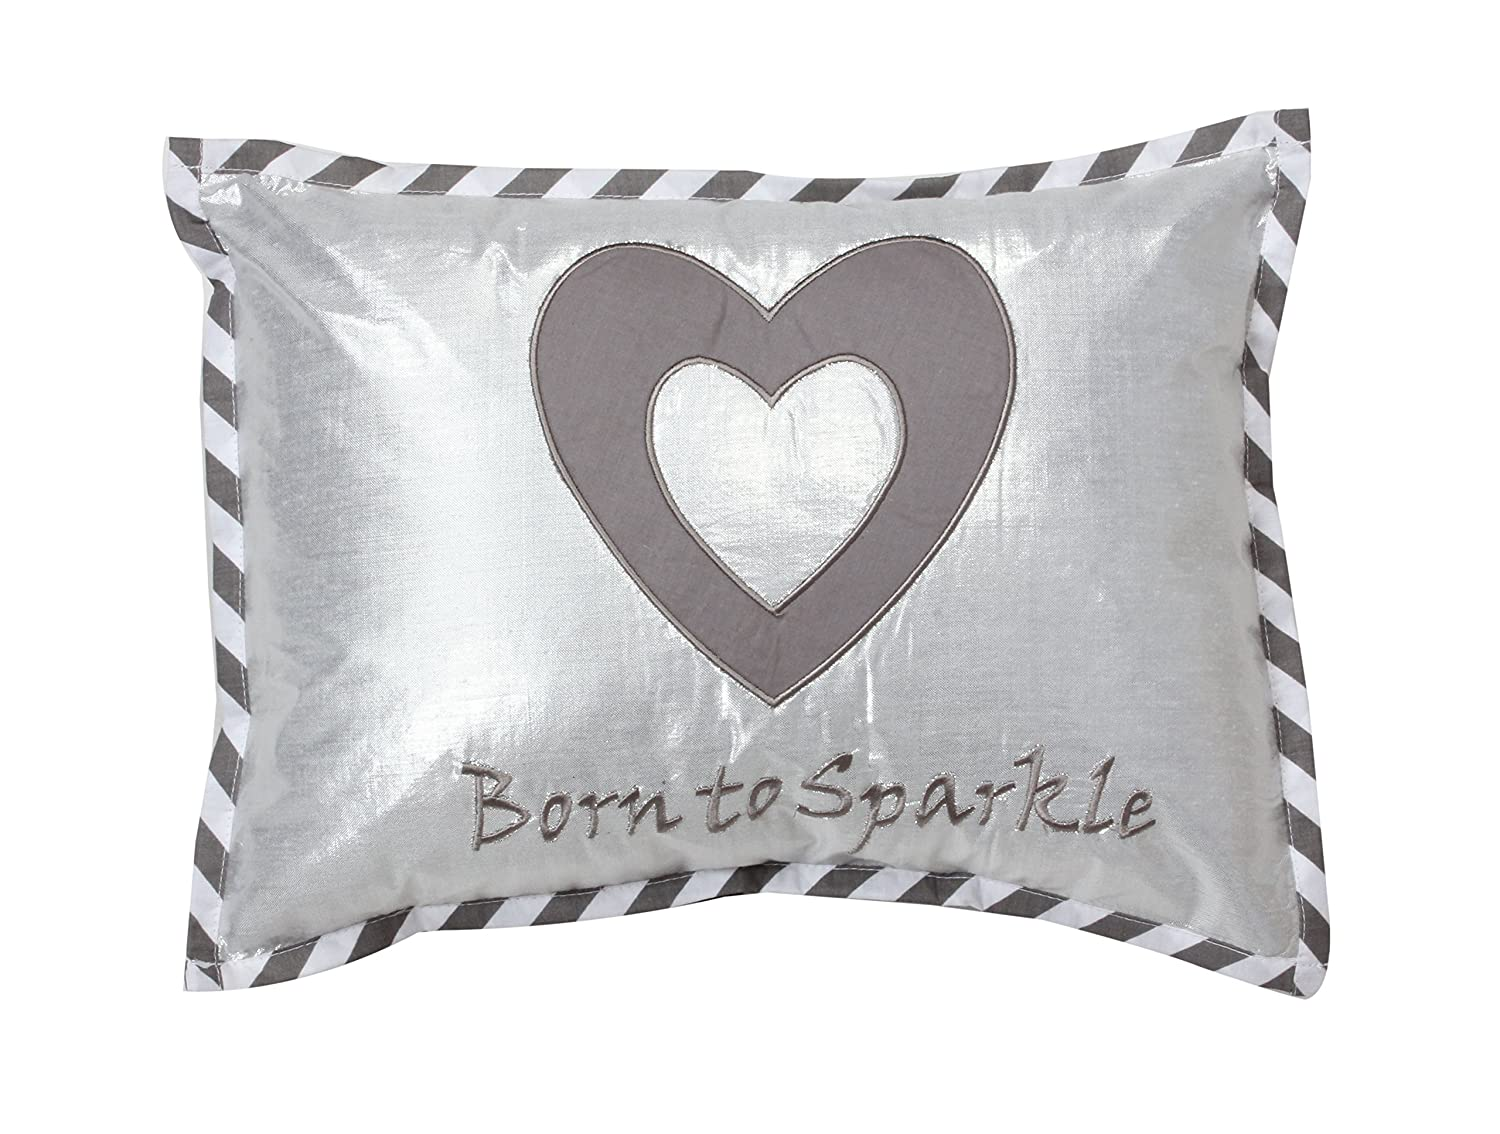 Bacati Love Dec Pillow Seattle Mall Ranking TOP13 Cover 12